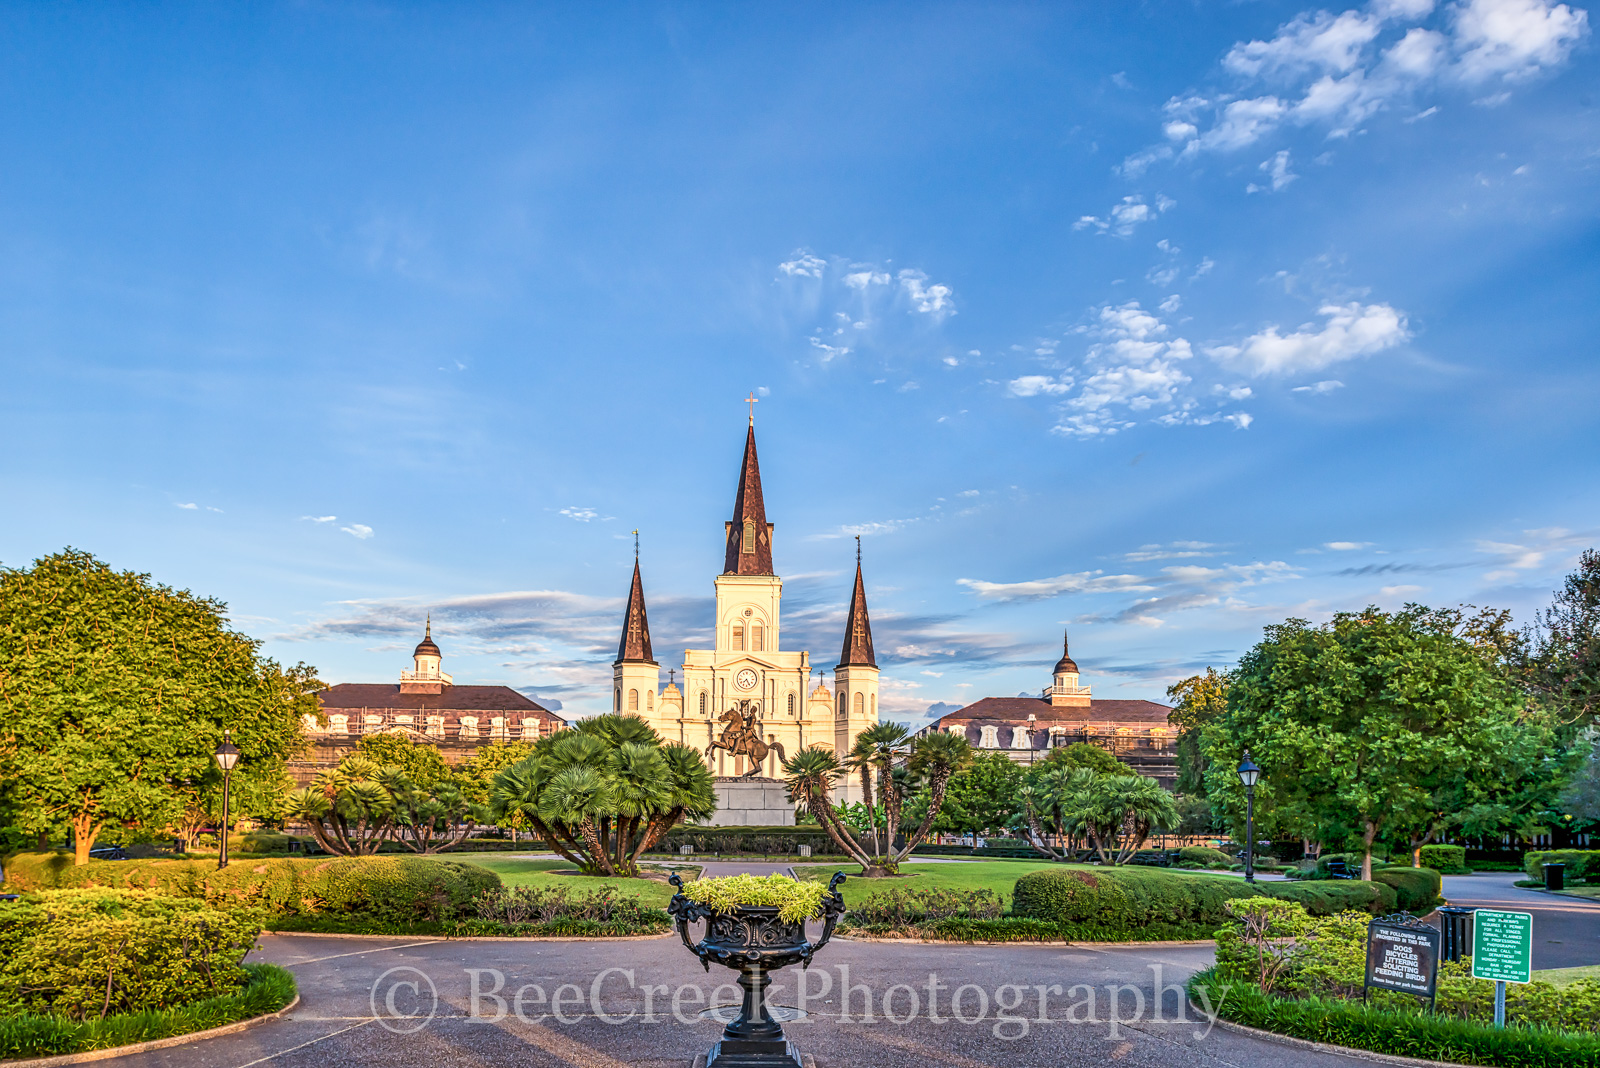 Cathedral, Jackson Square, Jackson statue, New Orleans, Saint Louis, blue sky, cityscape, cityscapes, garden, historic, landmark, landscape, landscapes, mississippi, morning, park, New Orleans citysca, photo